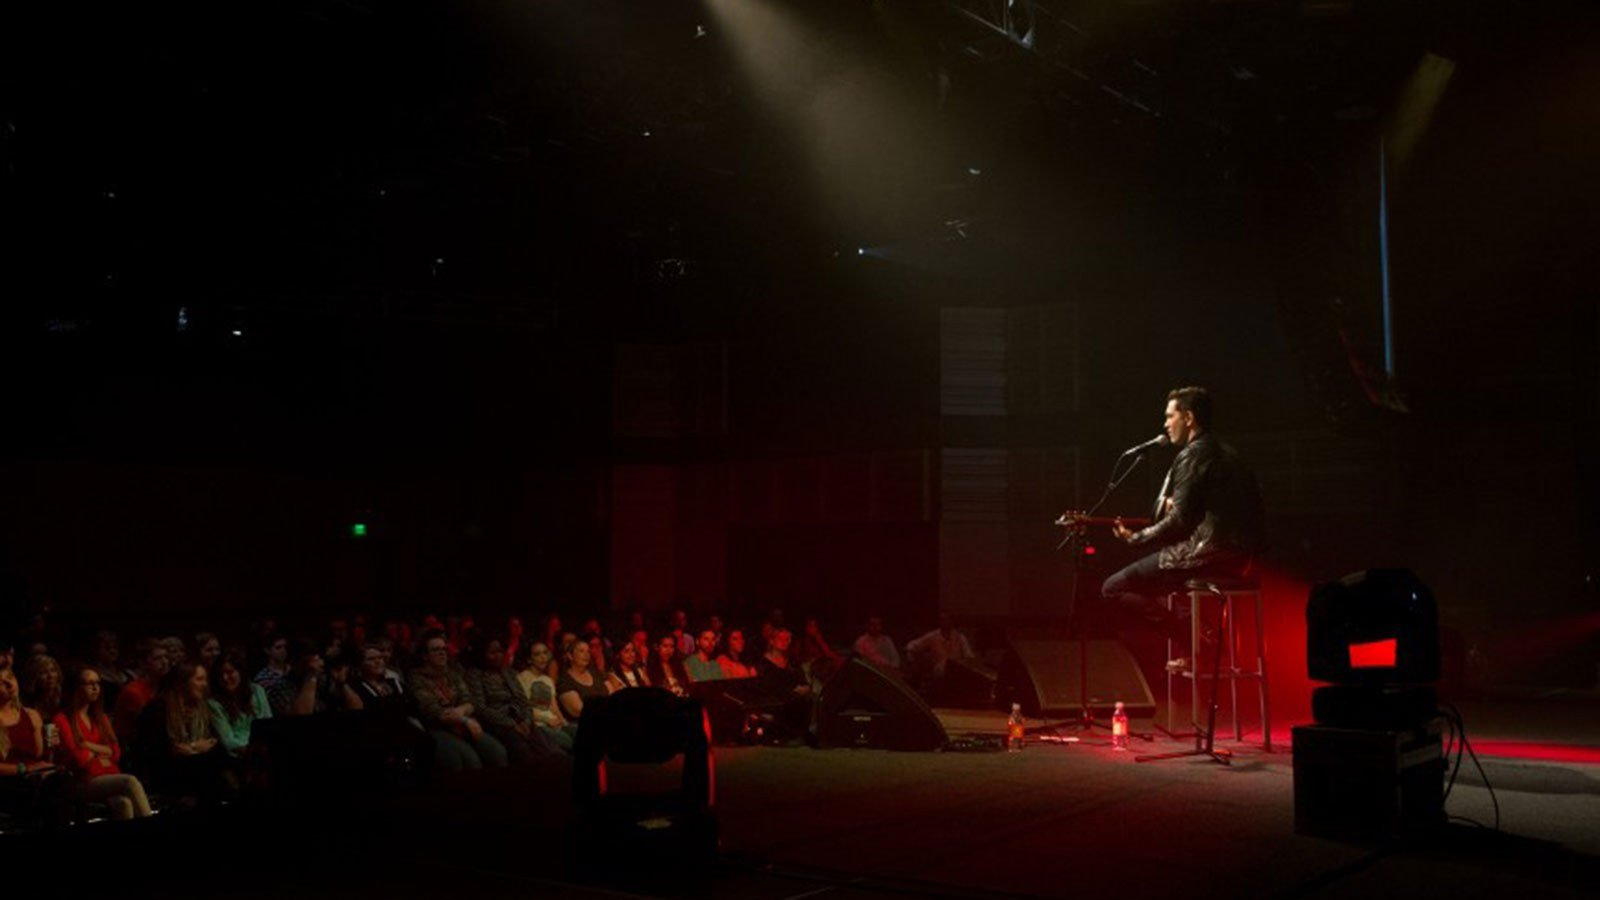 Andy Grammer Performs Live on Campus - Hero image